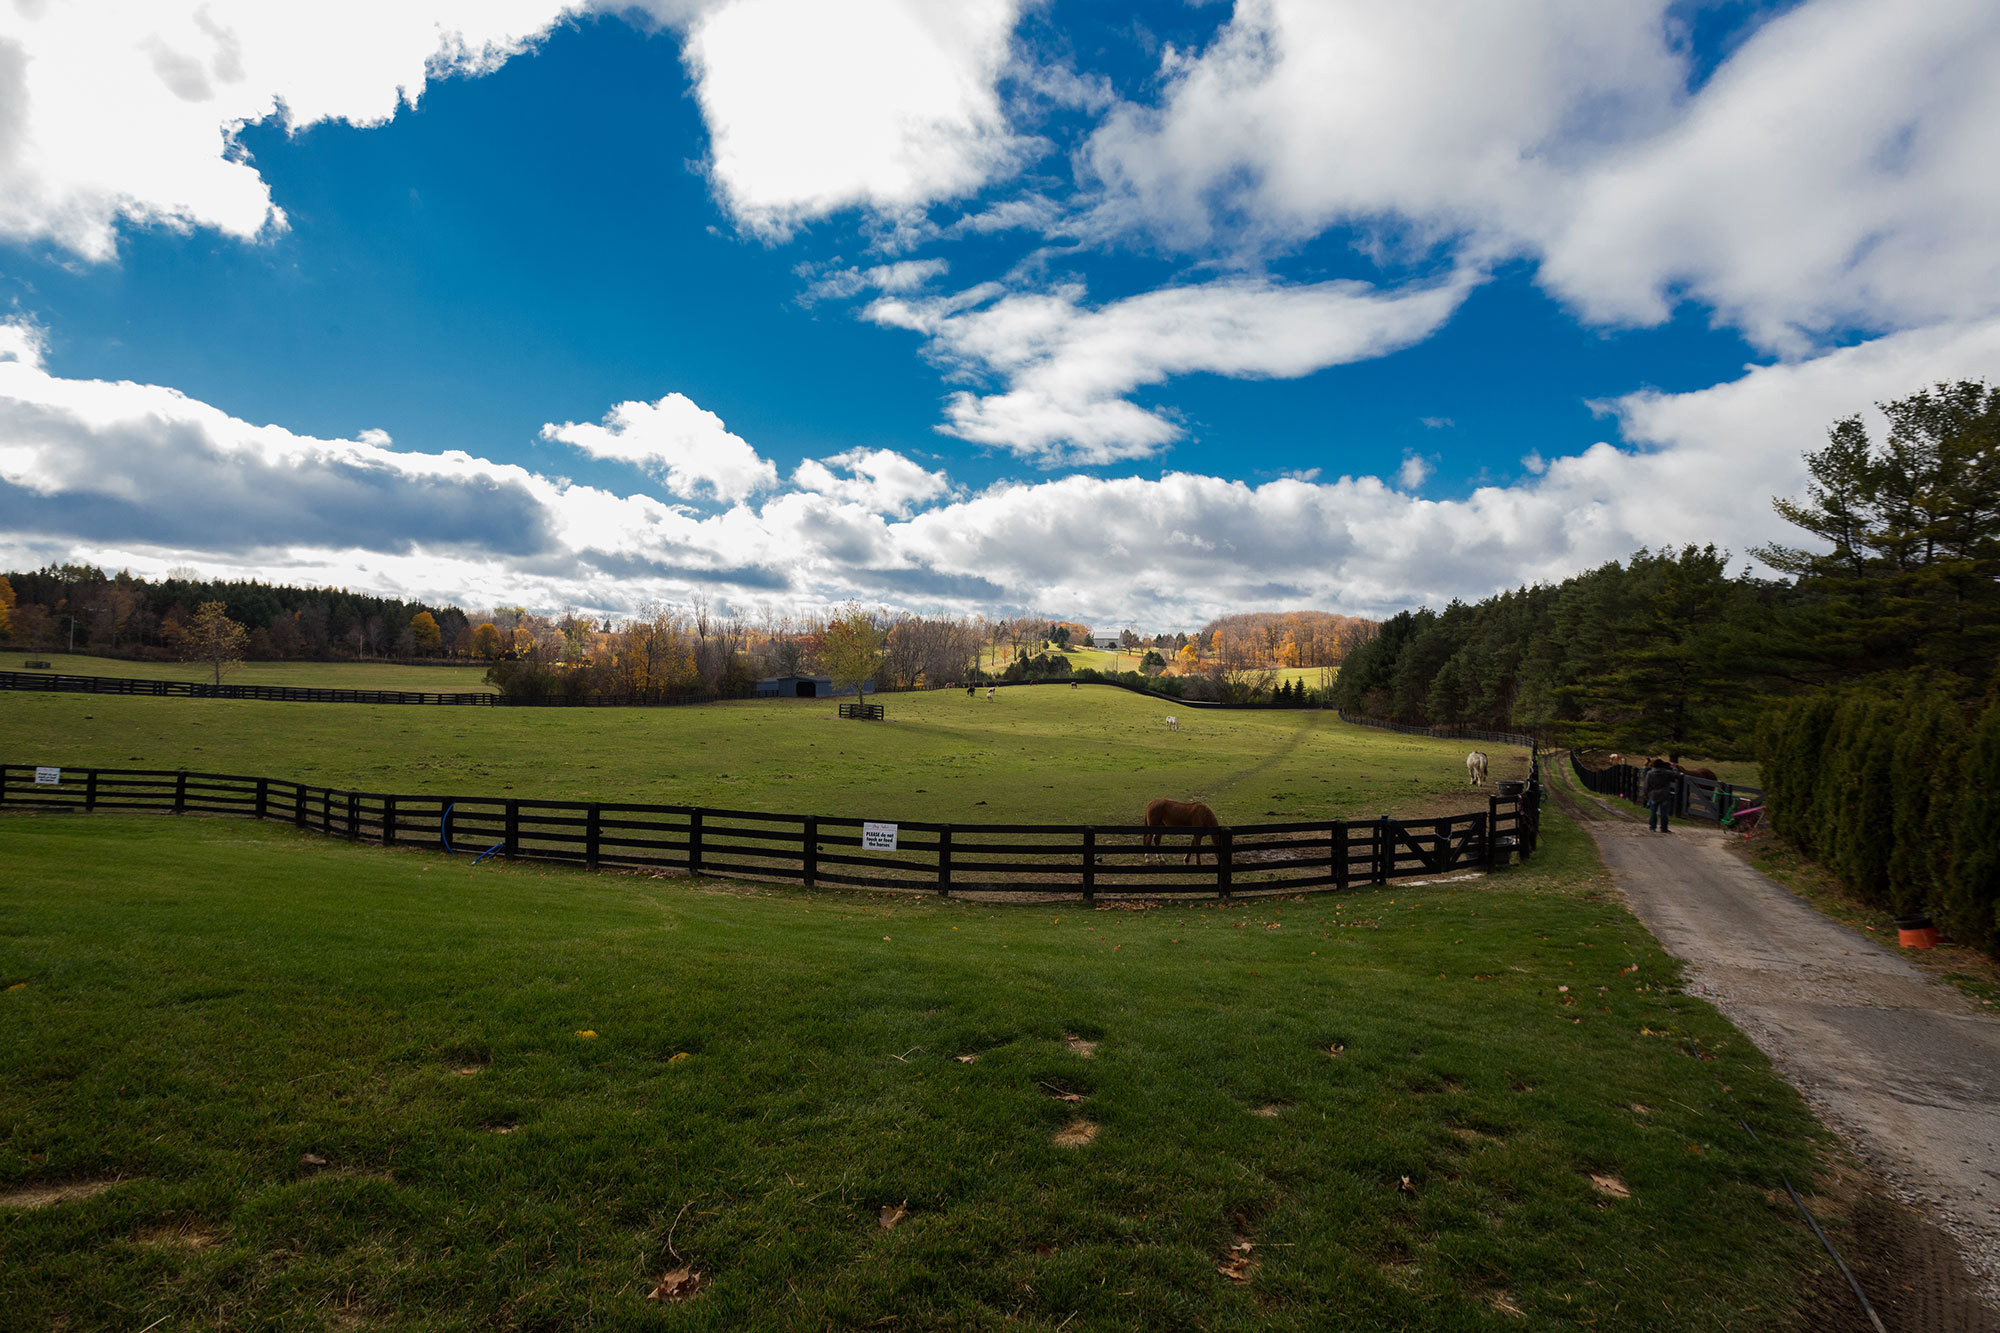 The sanctuary occupies fifty acres just outside Toronto and is also home to seventy horses.